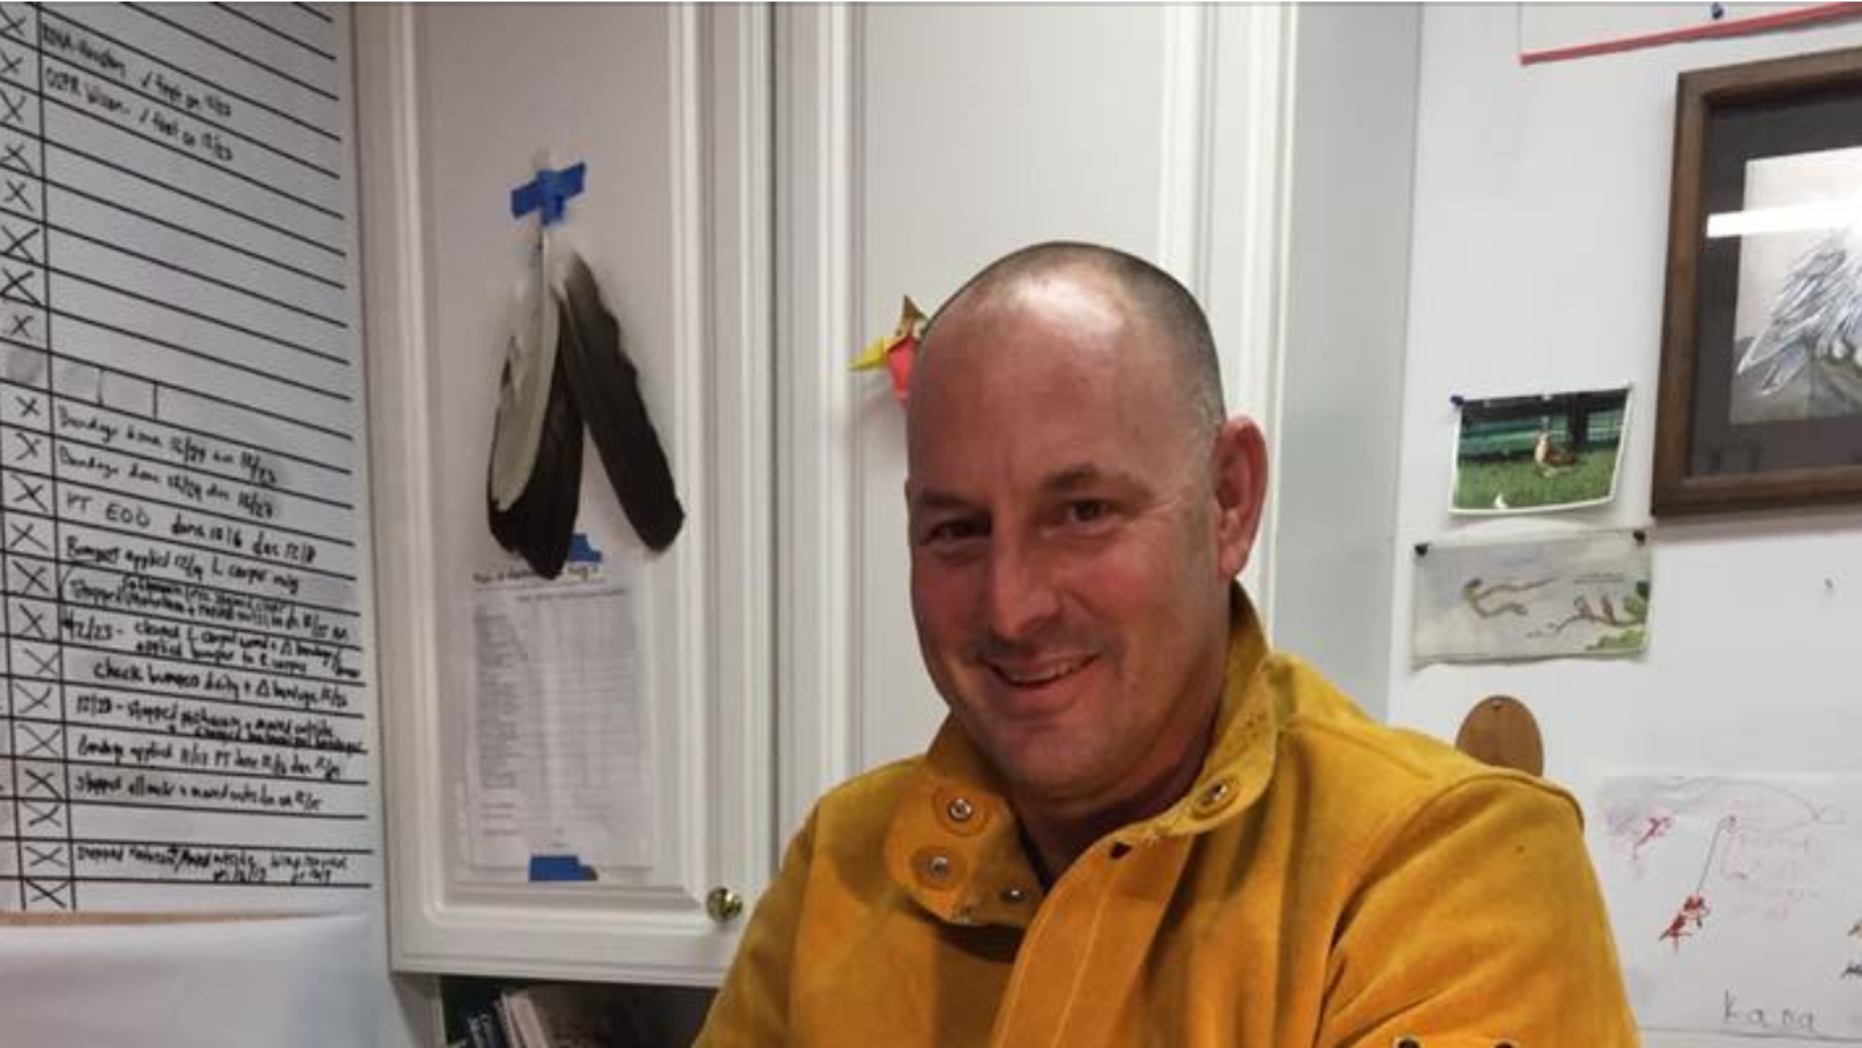 Lt. Jeff Woods rescued a bald eagle on Christmas Eve.